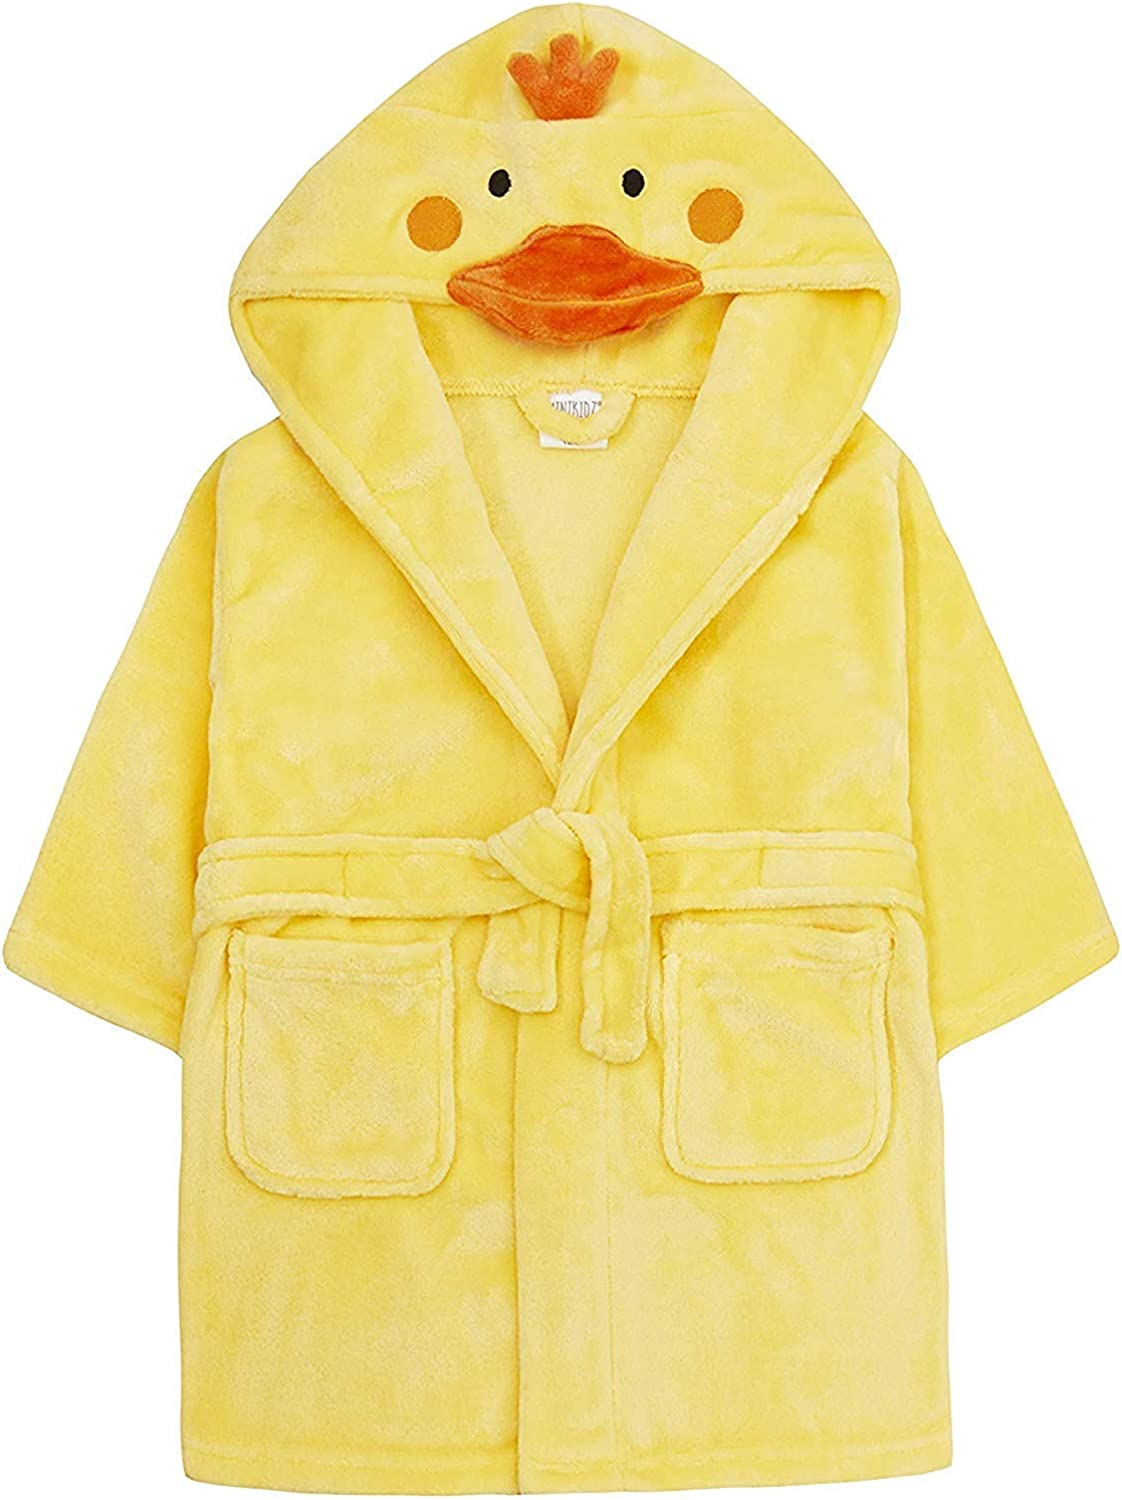 Baby Novelty Dressing Gown Baby Mouse Panda Duck Hooded Face Detail 6-12 12-18 18-24